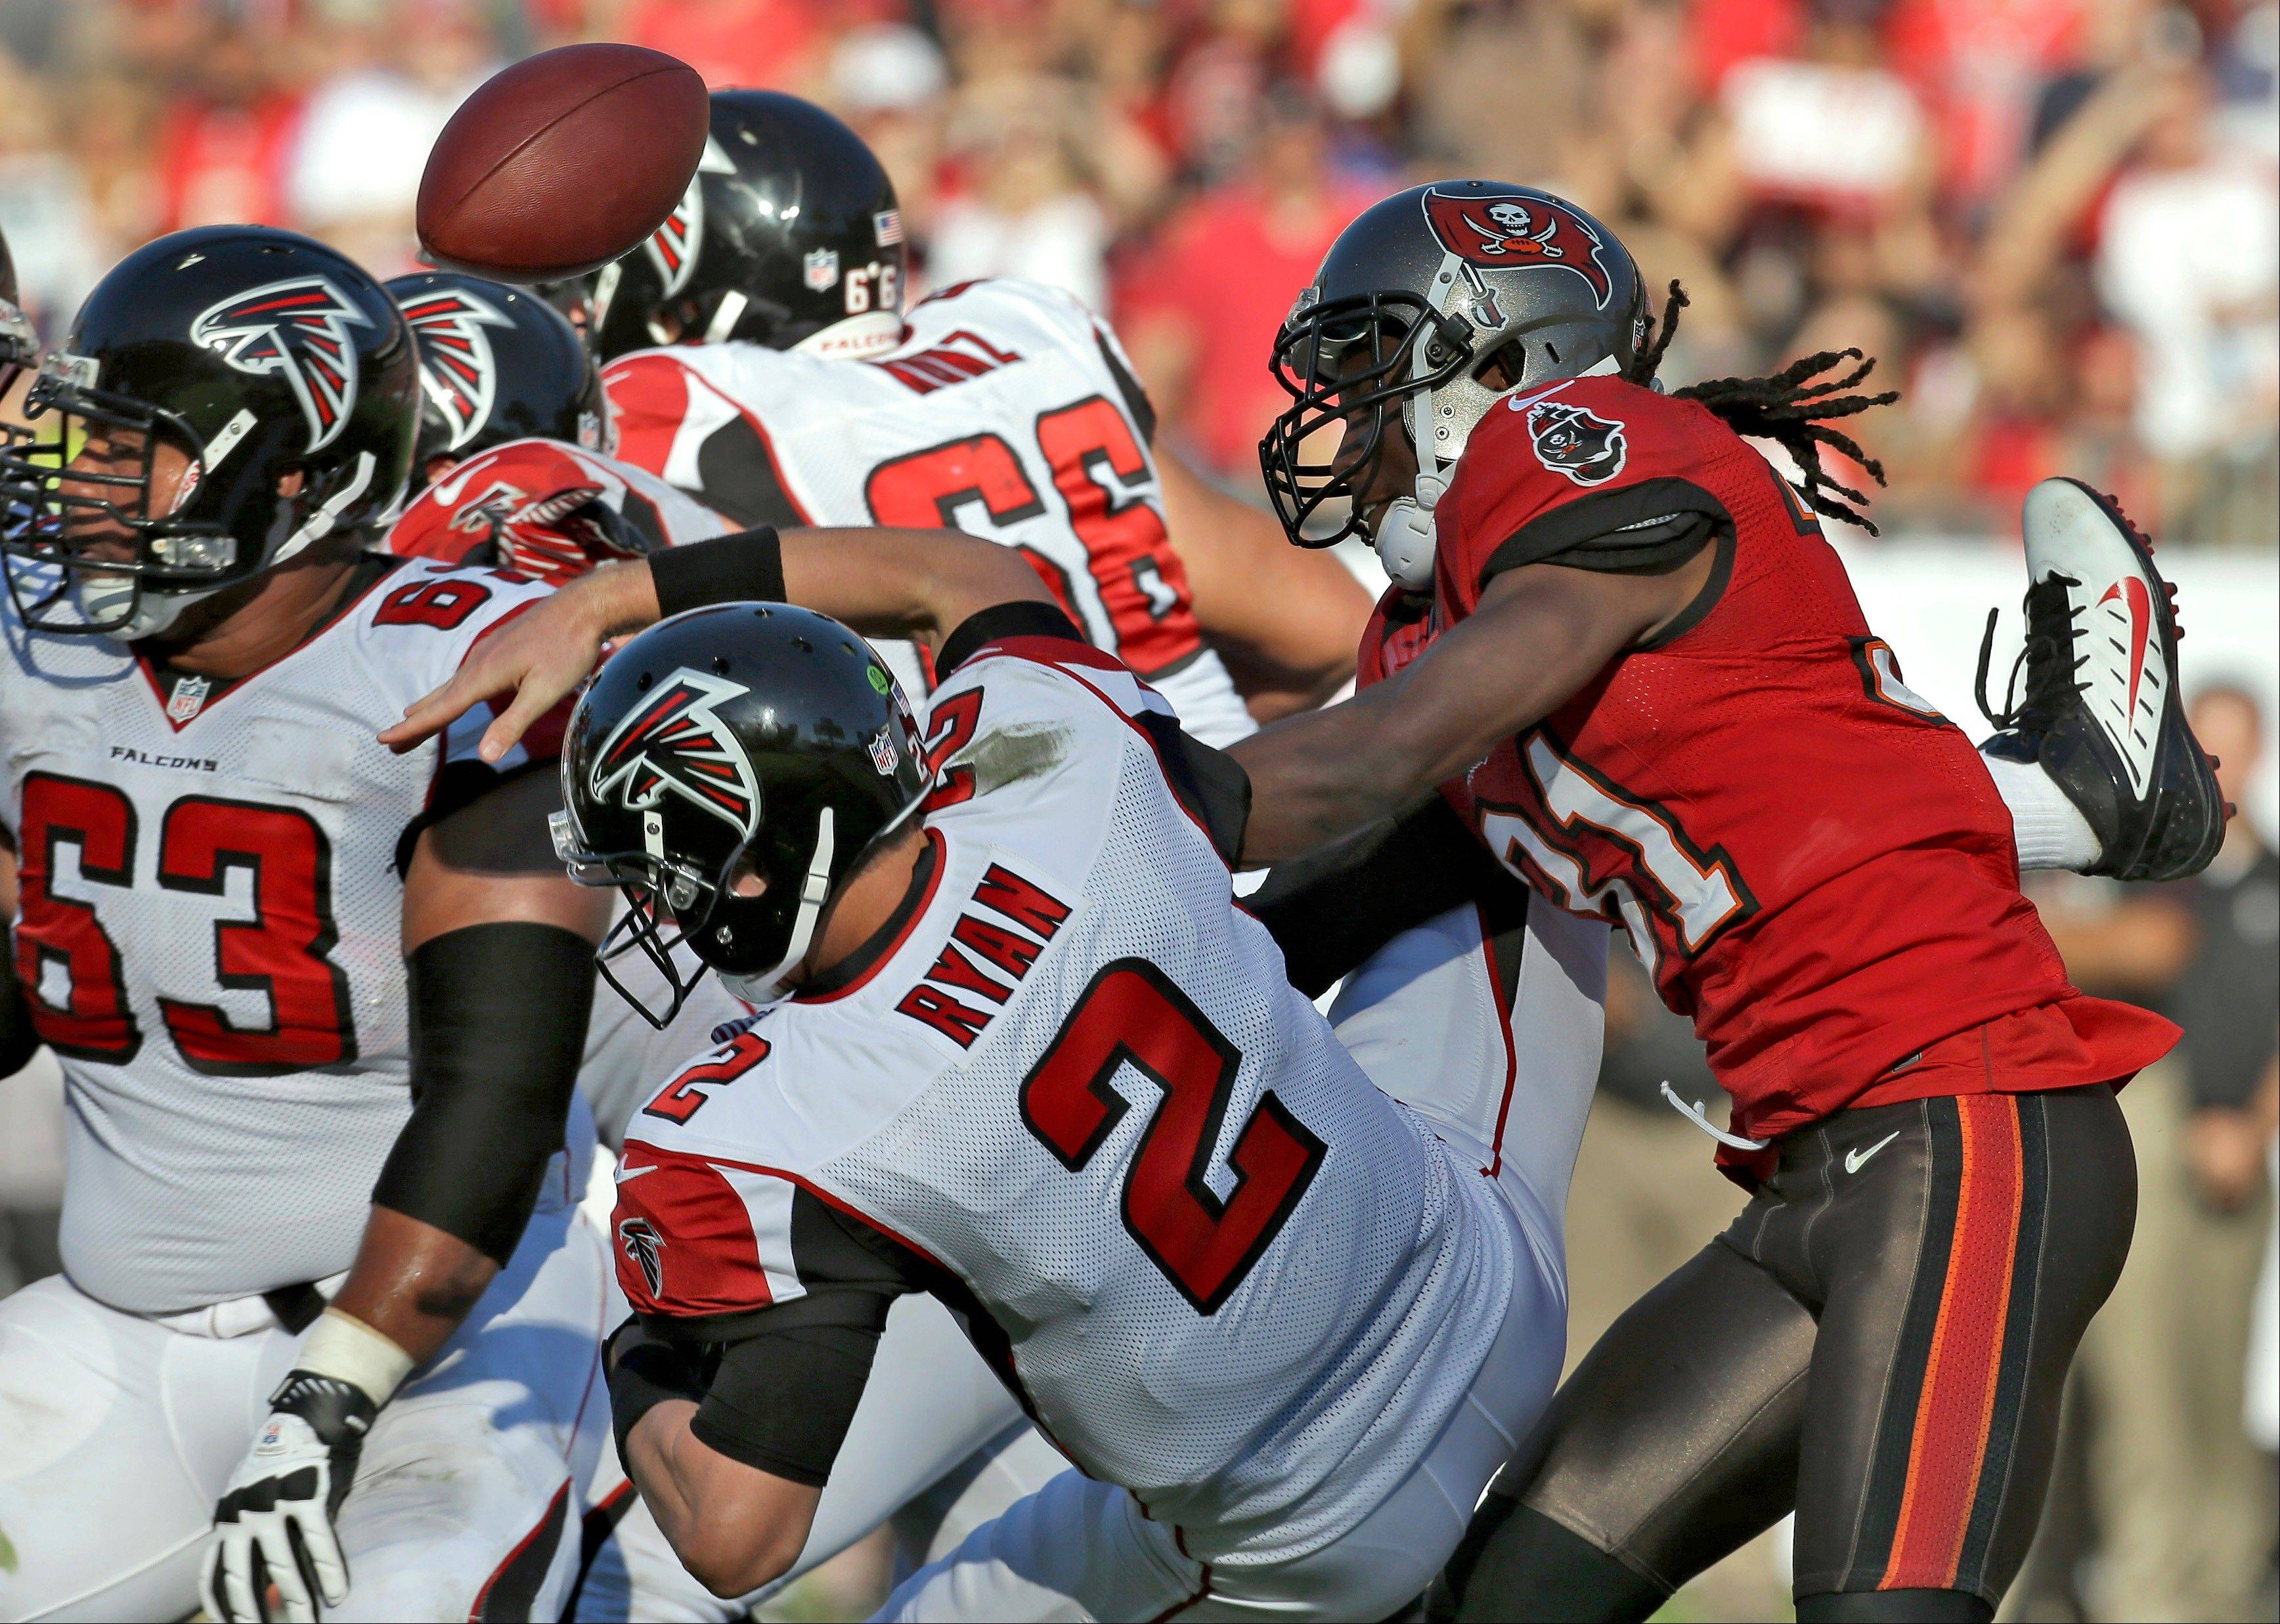 Tampa Bay Buccaneers cornerback E.J. Biggers hits Atlanta Falcons quarterback Matt Ryan, forcing a fumble during the fourth quarter of Sunday's game in Tampa, Fla.